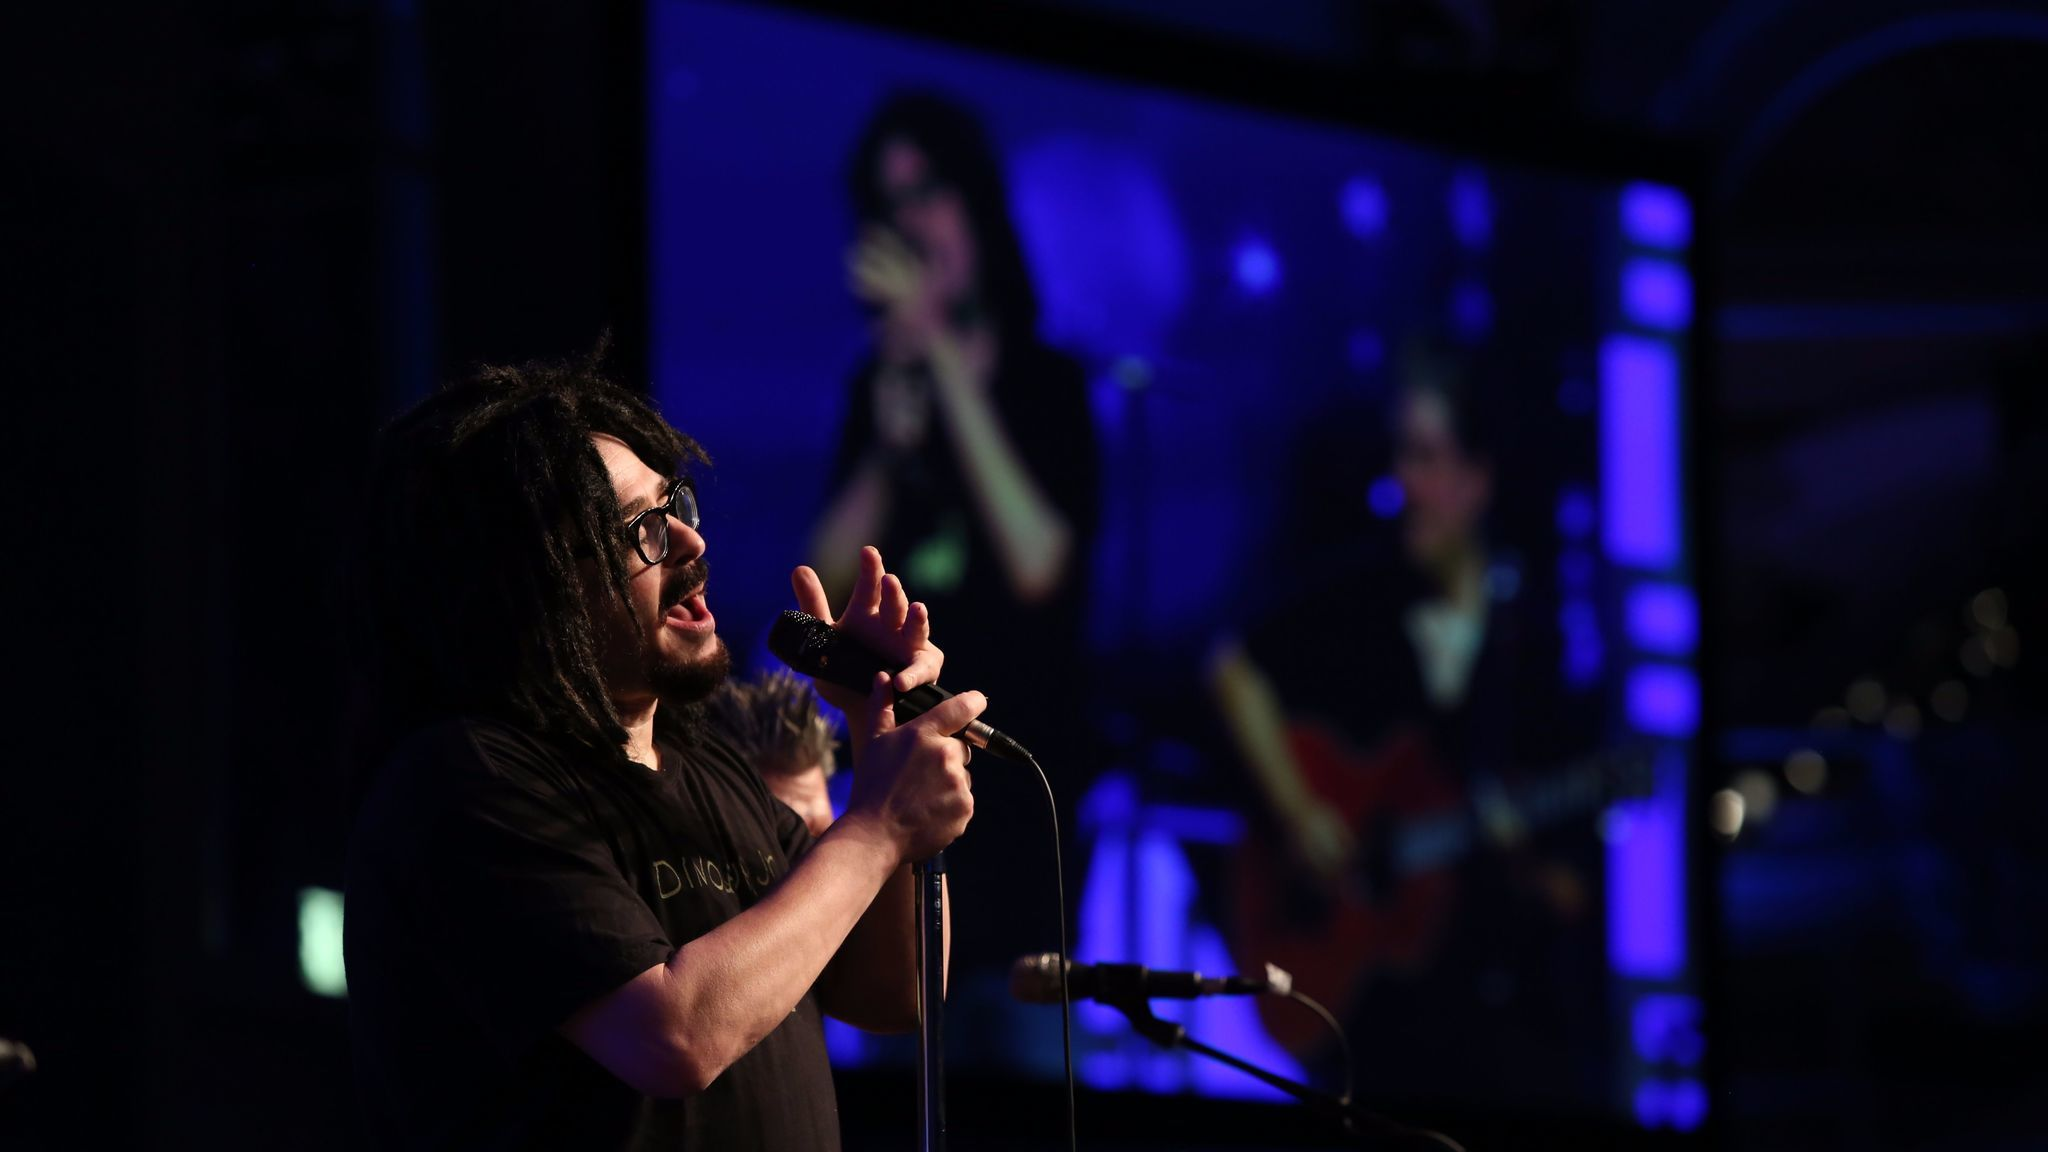 Adam Duritz of Counting Crows performs at the Cool Comedy Hot Cuisine event.